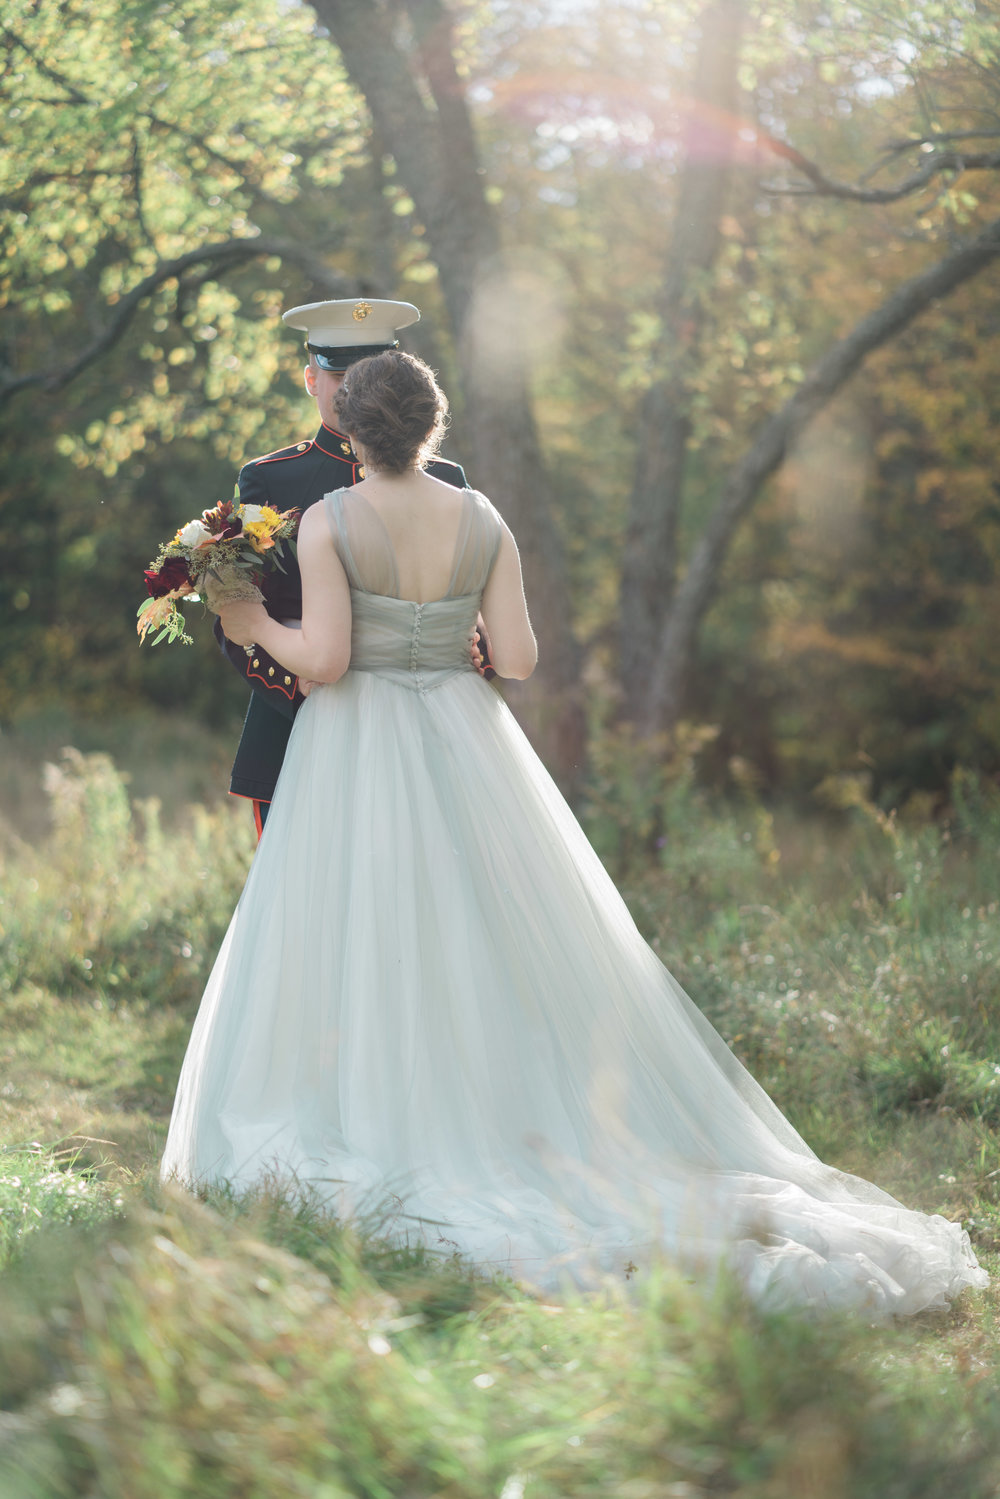 Meg and Brandon Wedding Photography at O'Brien's Sleepy Hollow by Stefan Ludwig Photography in East Aurora, NY-295.jpg